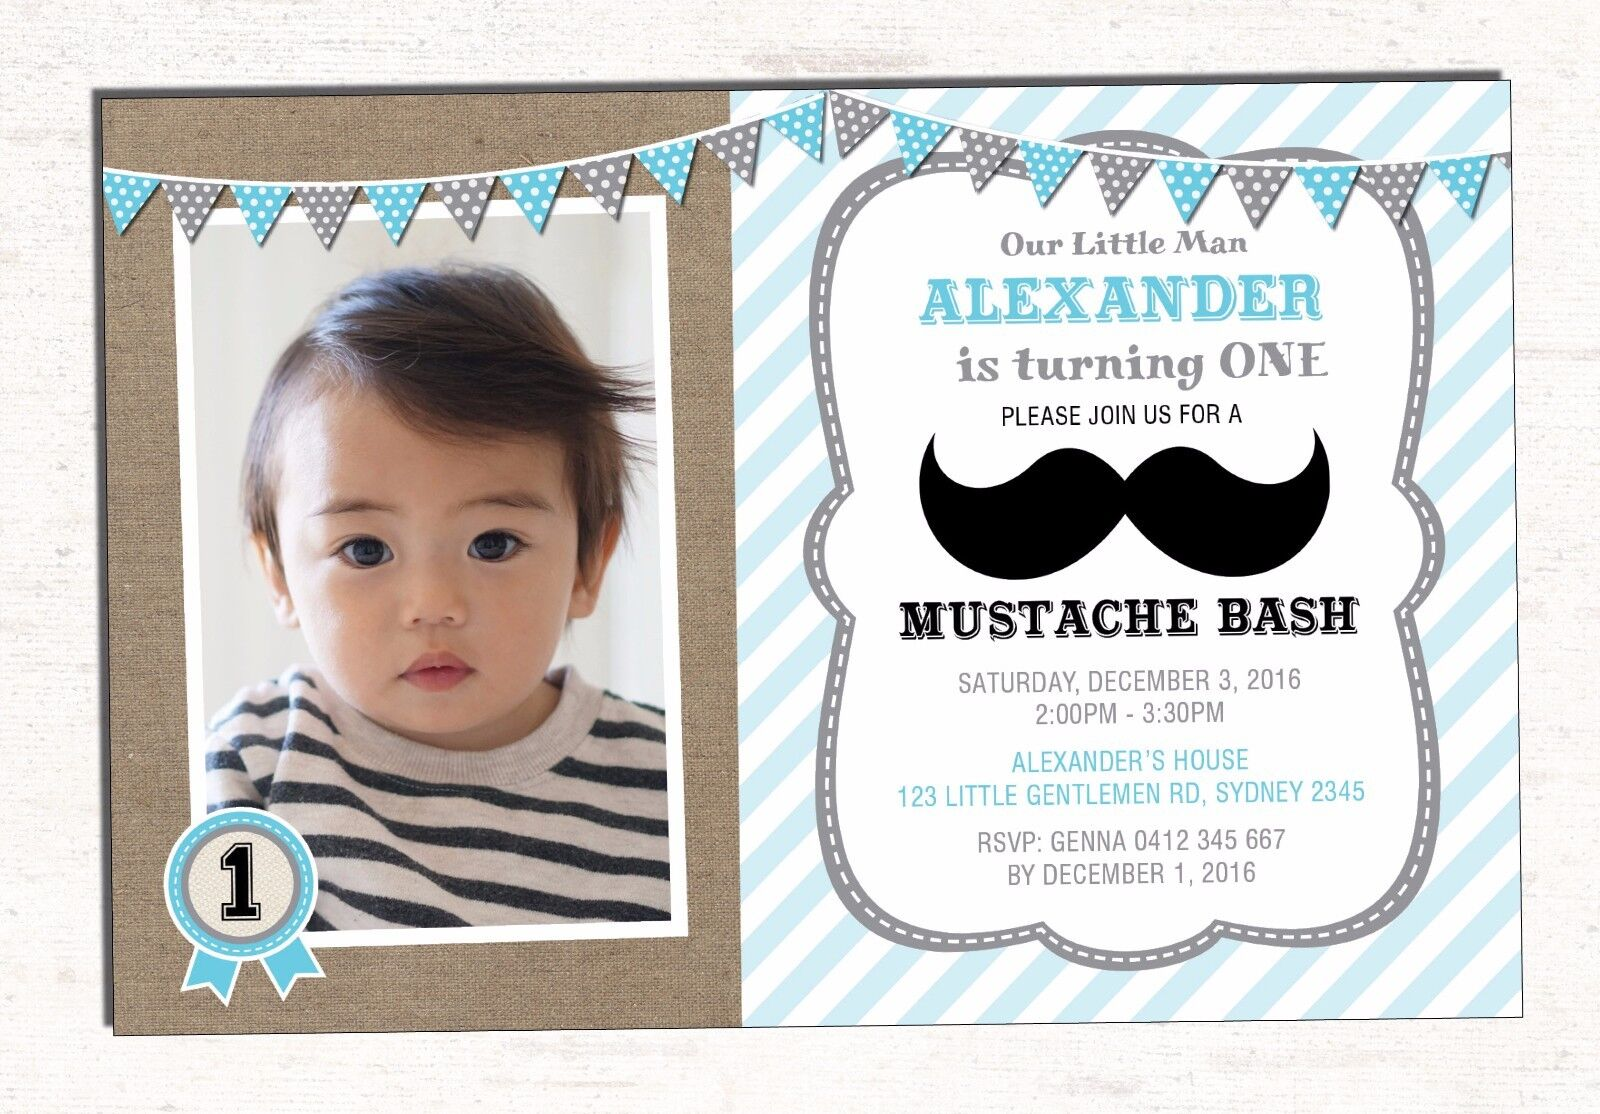 Little man first birthday invitation moustache party bash bowtie little man first birthday invitation moustache party bash bowtie invite 1 of 1free shipping filmwisefo